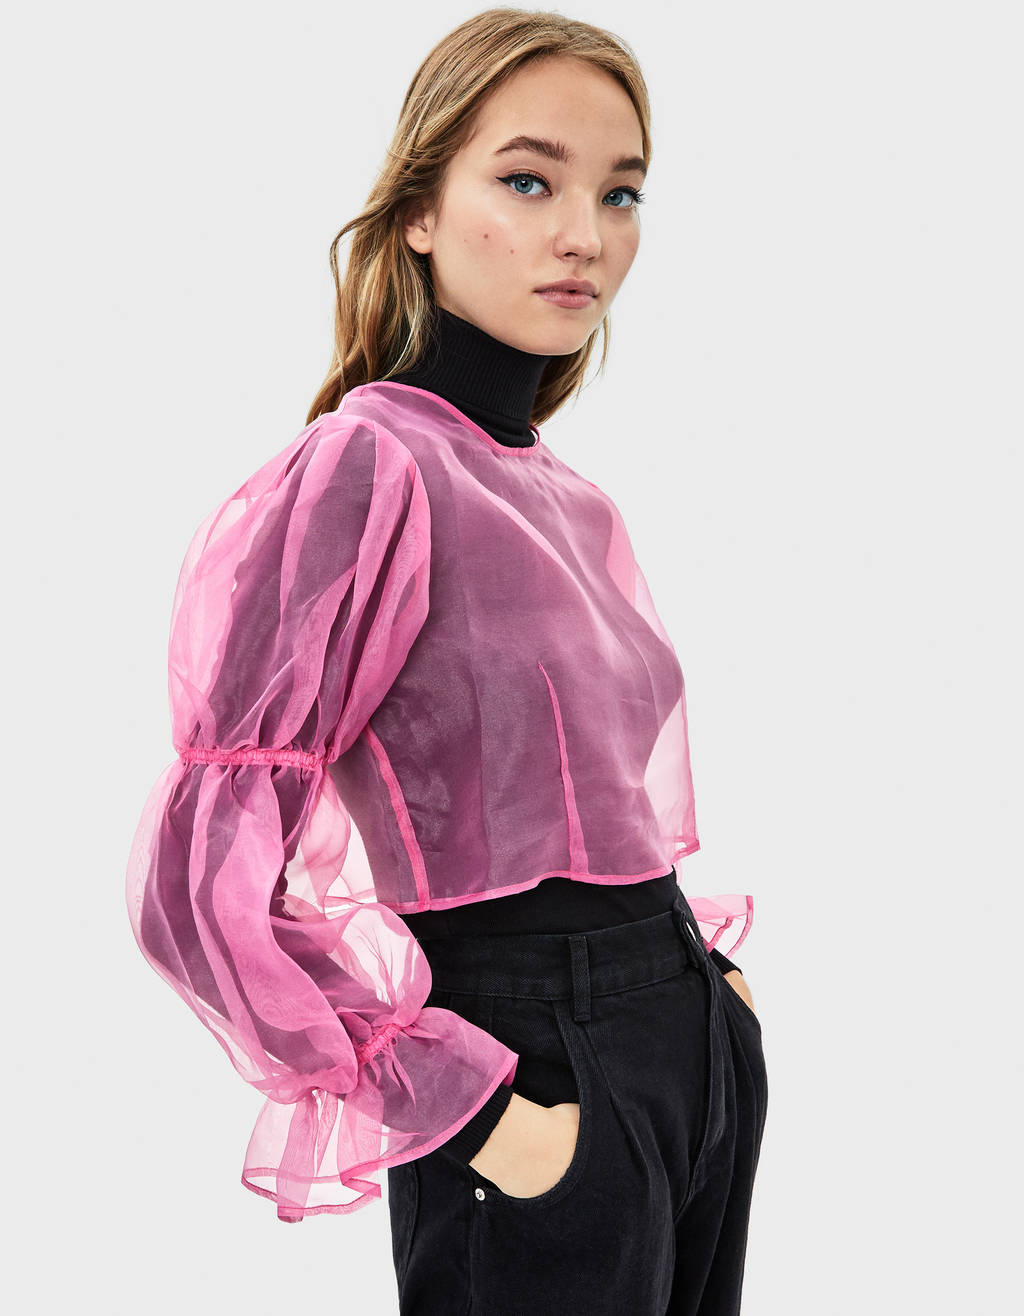 Organza gathered sleeve blouse